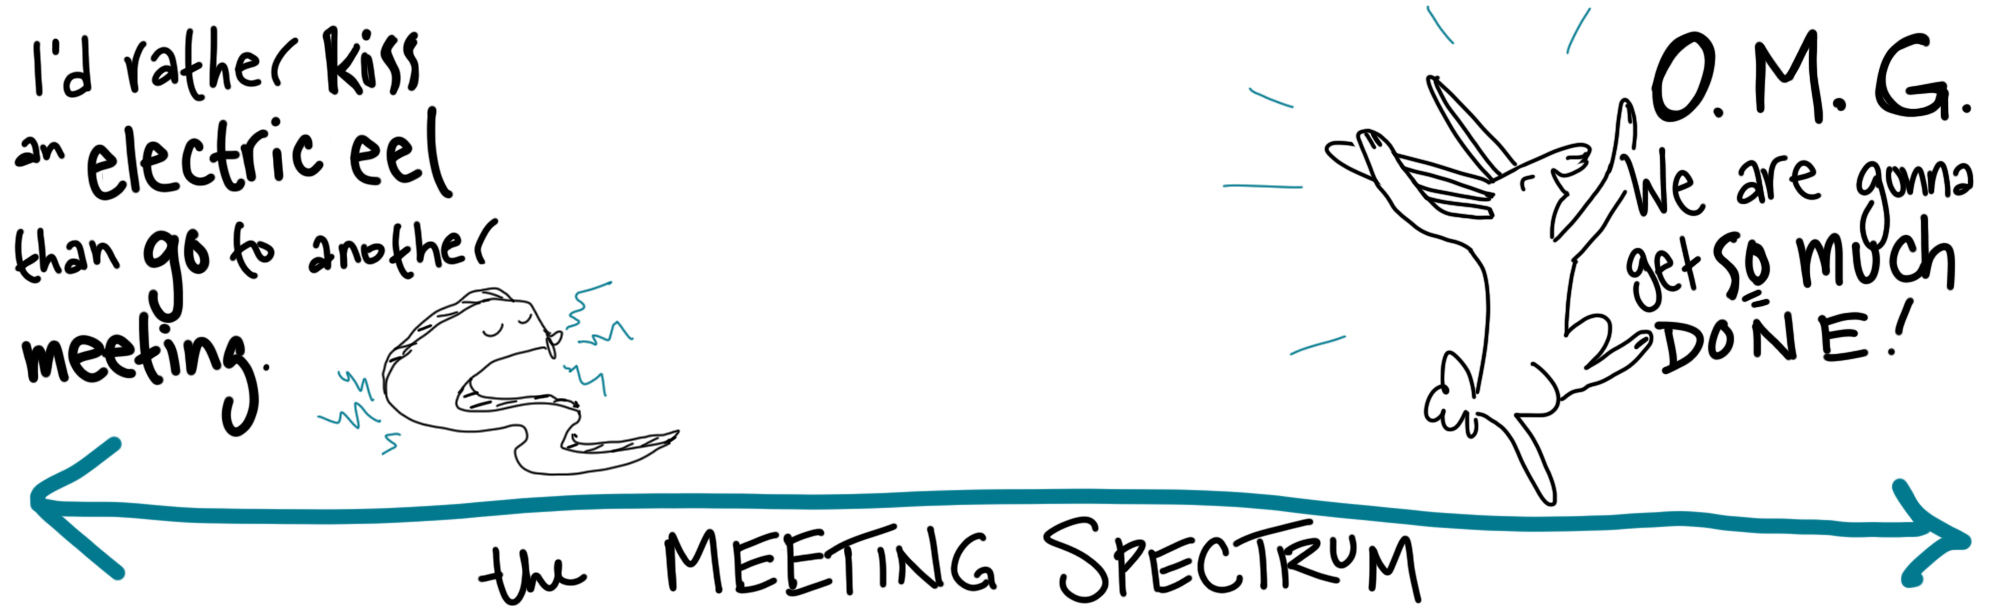 graphic-recording-feelings-about-meetings-spectrum